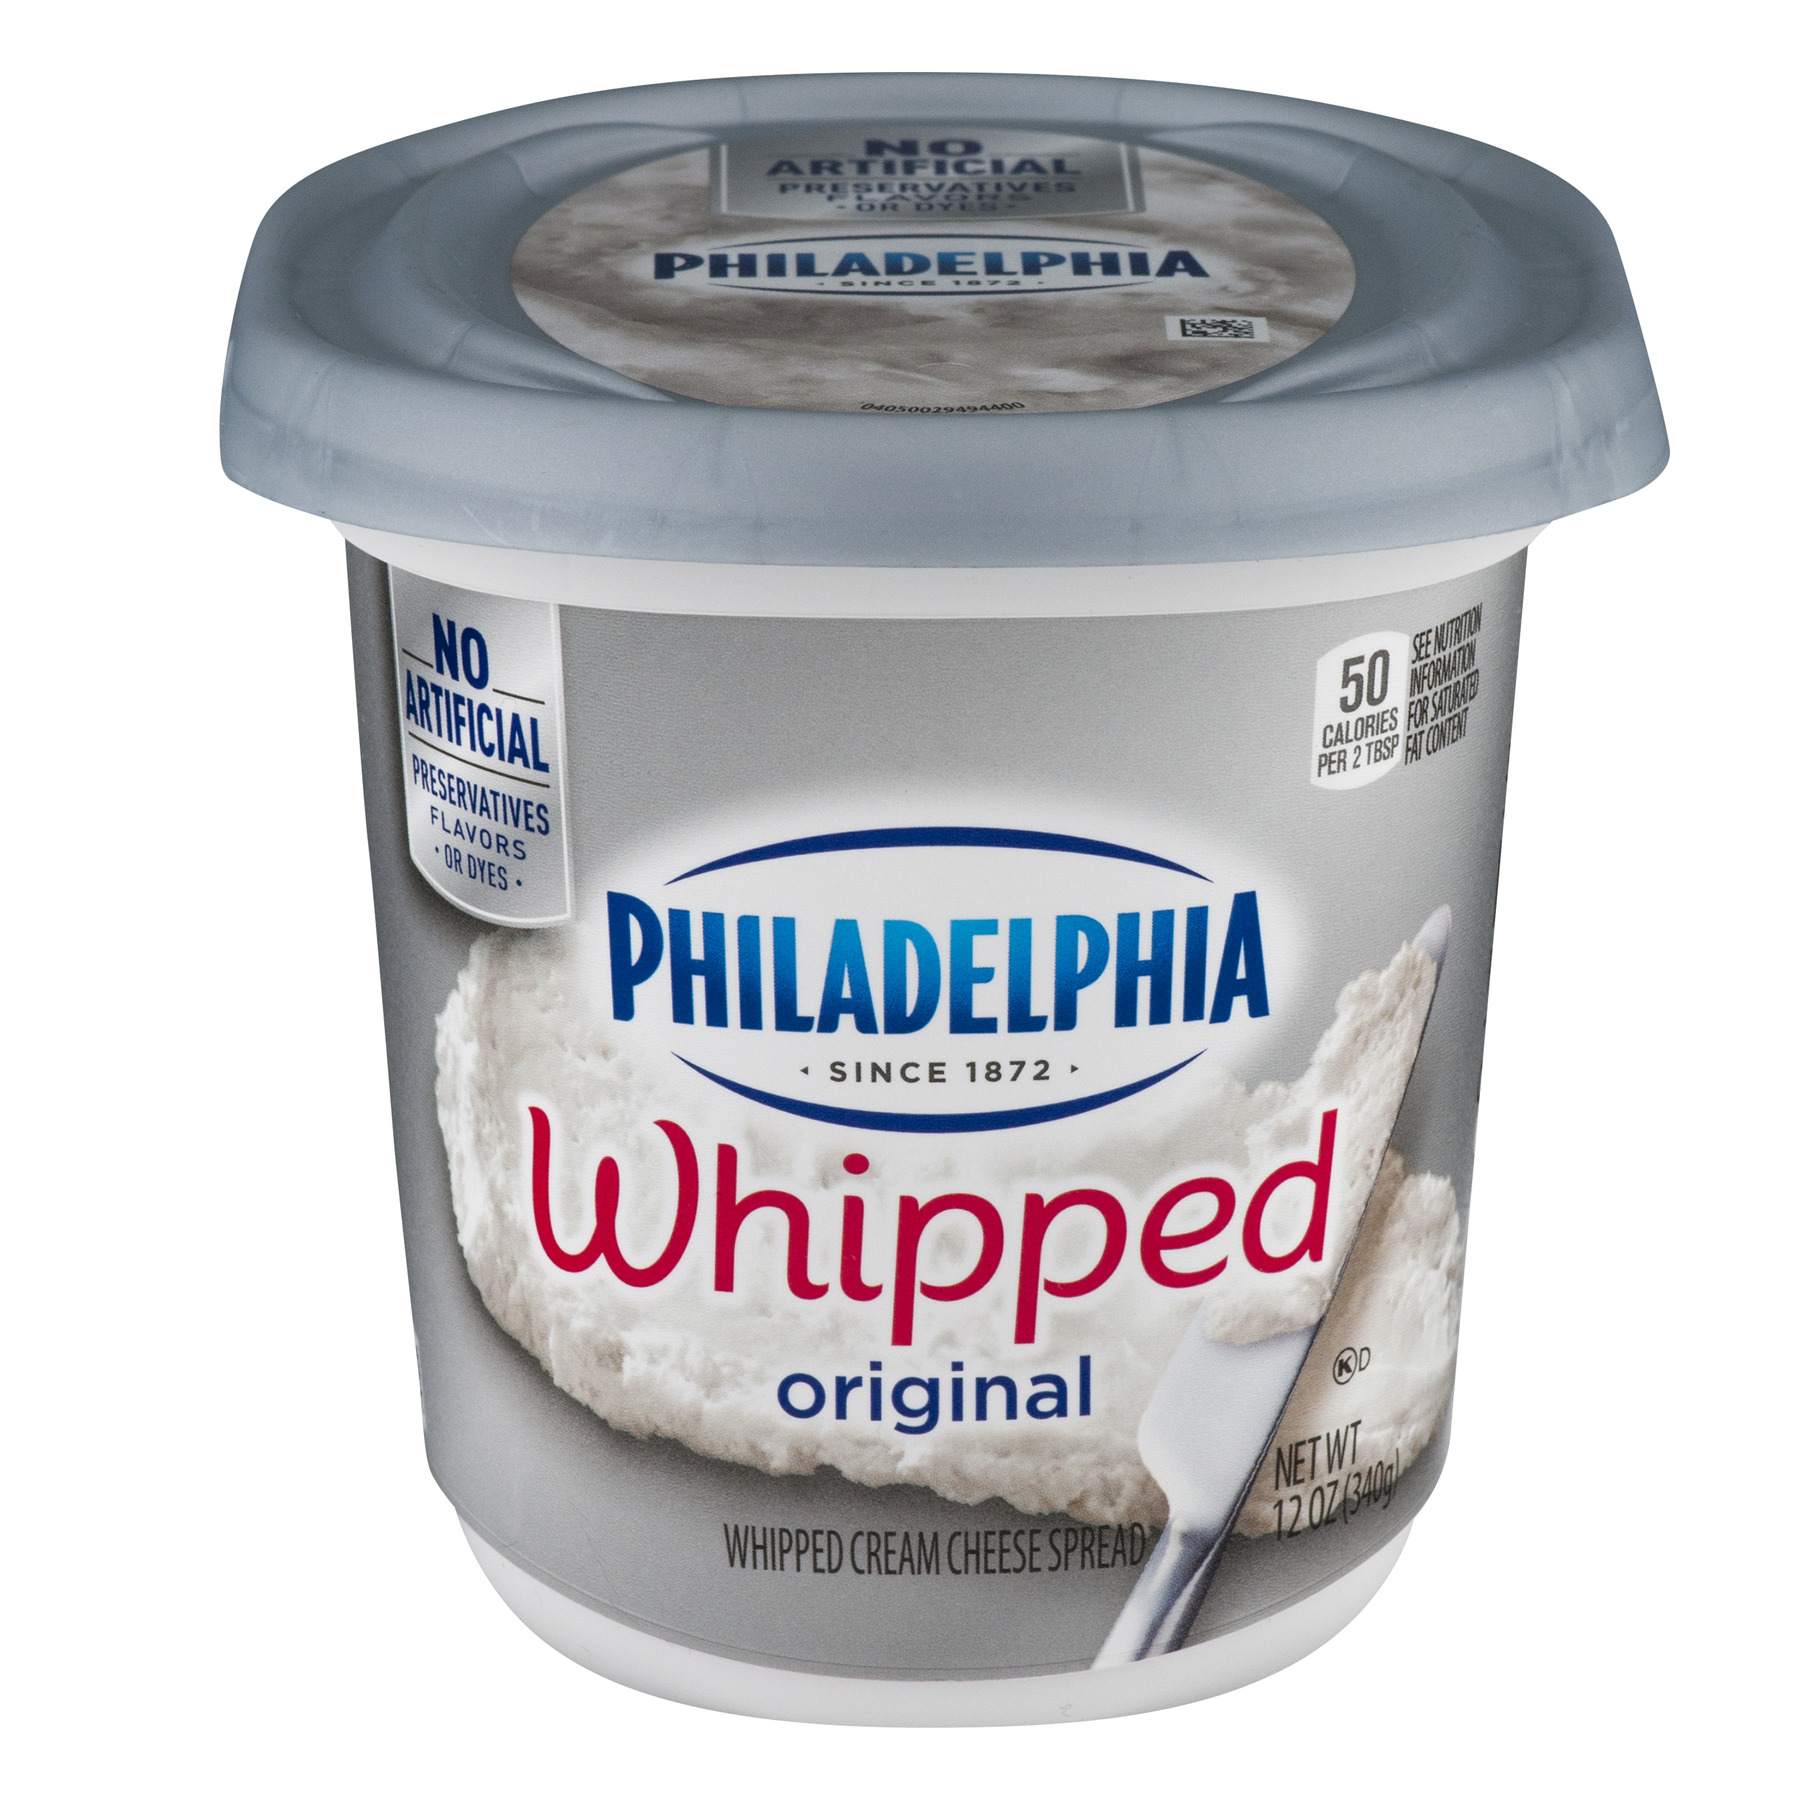 Philadelphia Whipped Original Cream Cheese Spread, 12.0 OZ